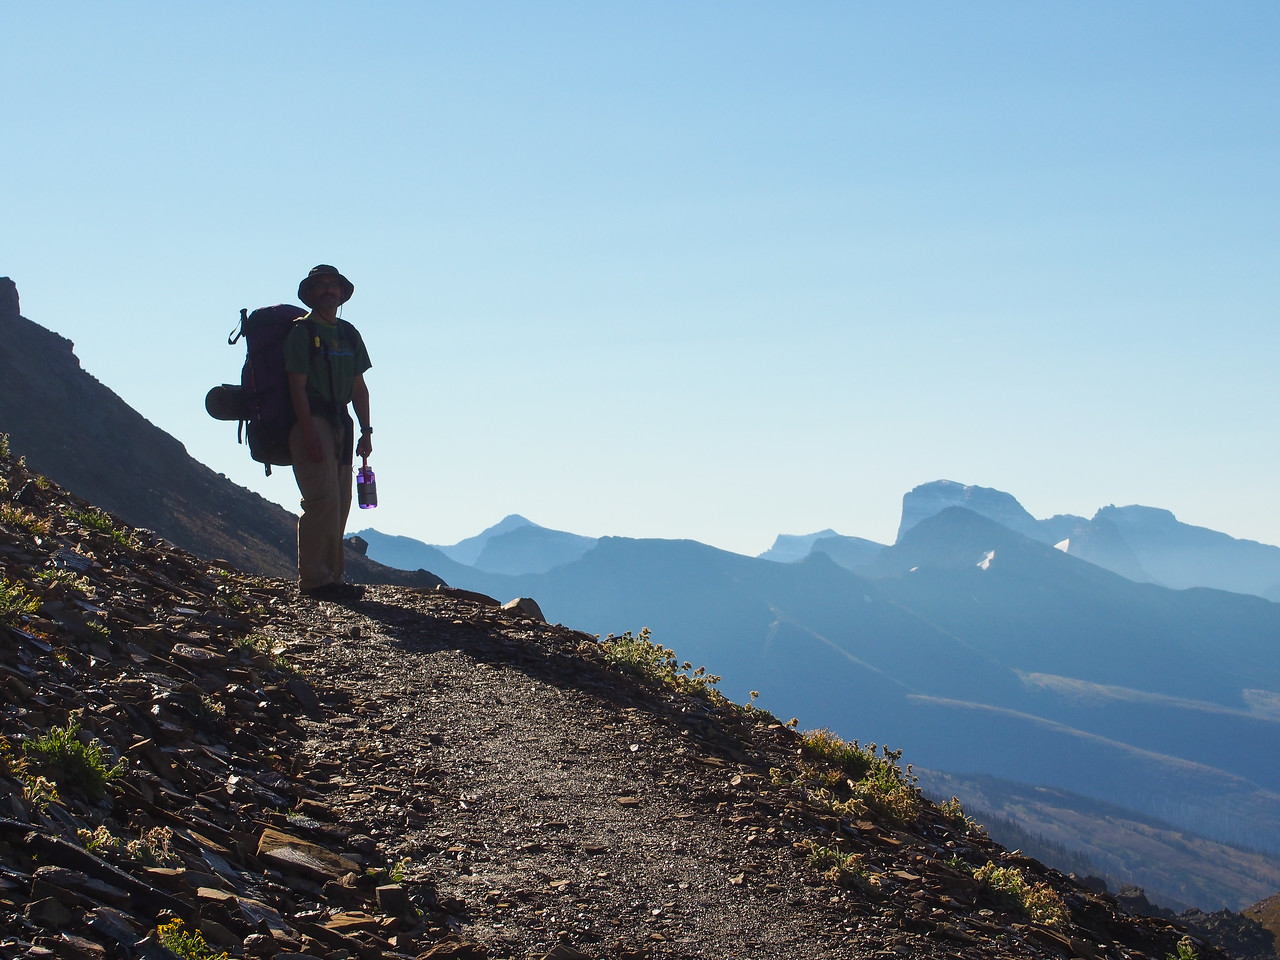 Day 4/5 - Mark on Highline trail, Glacier NP